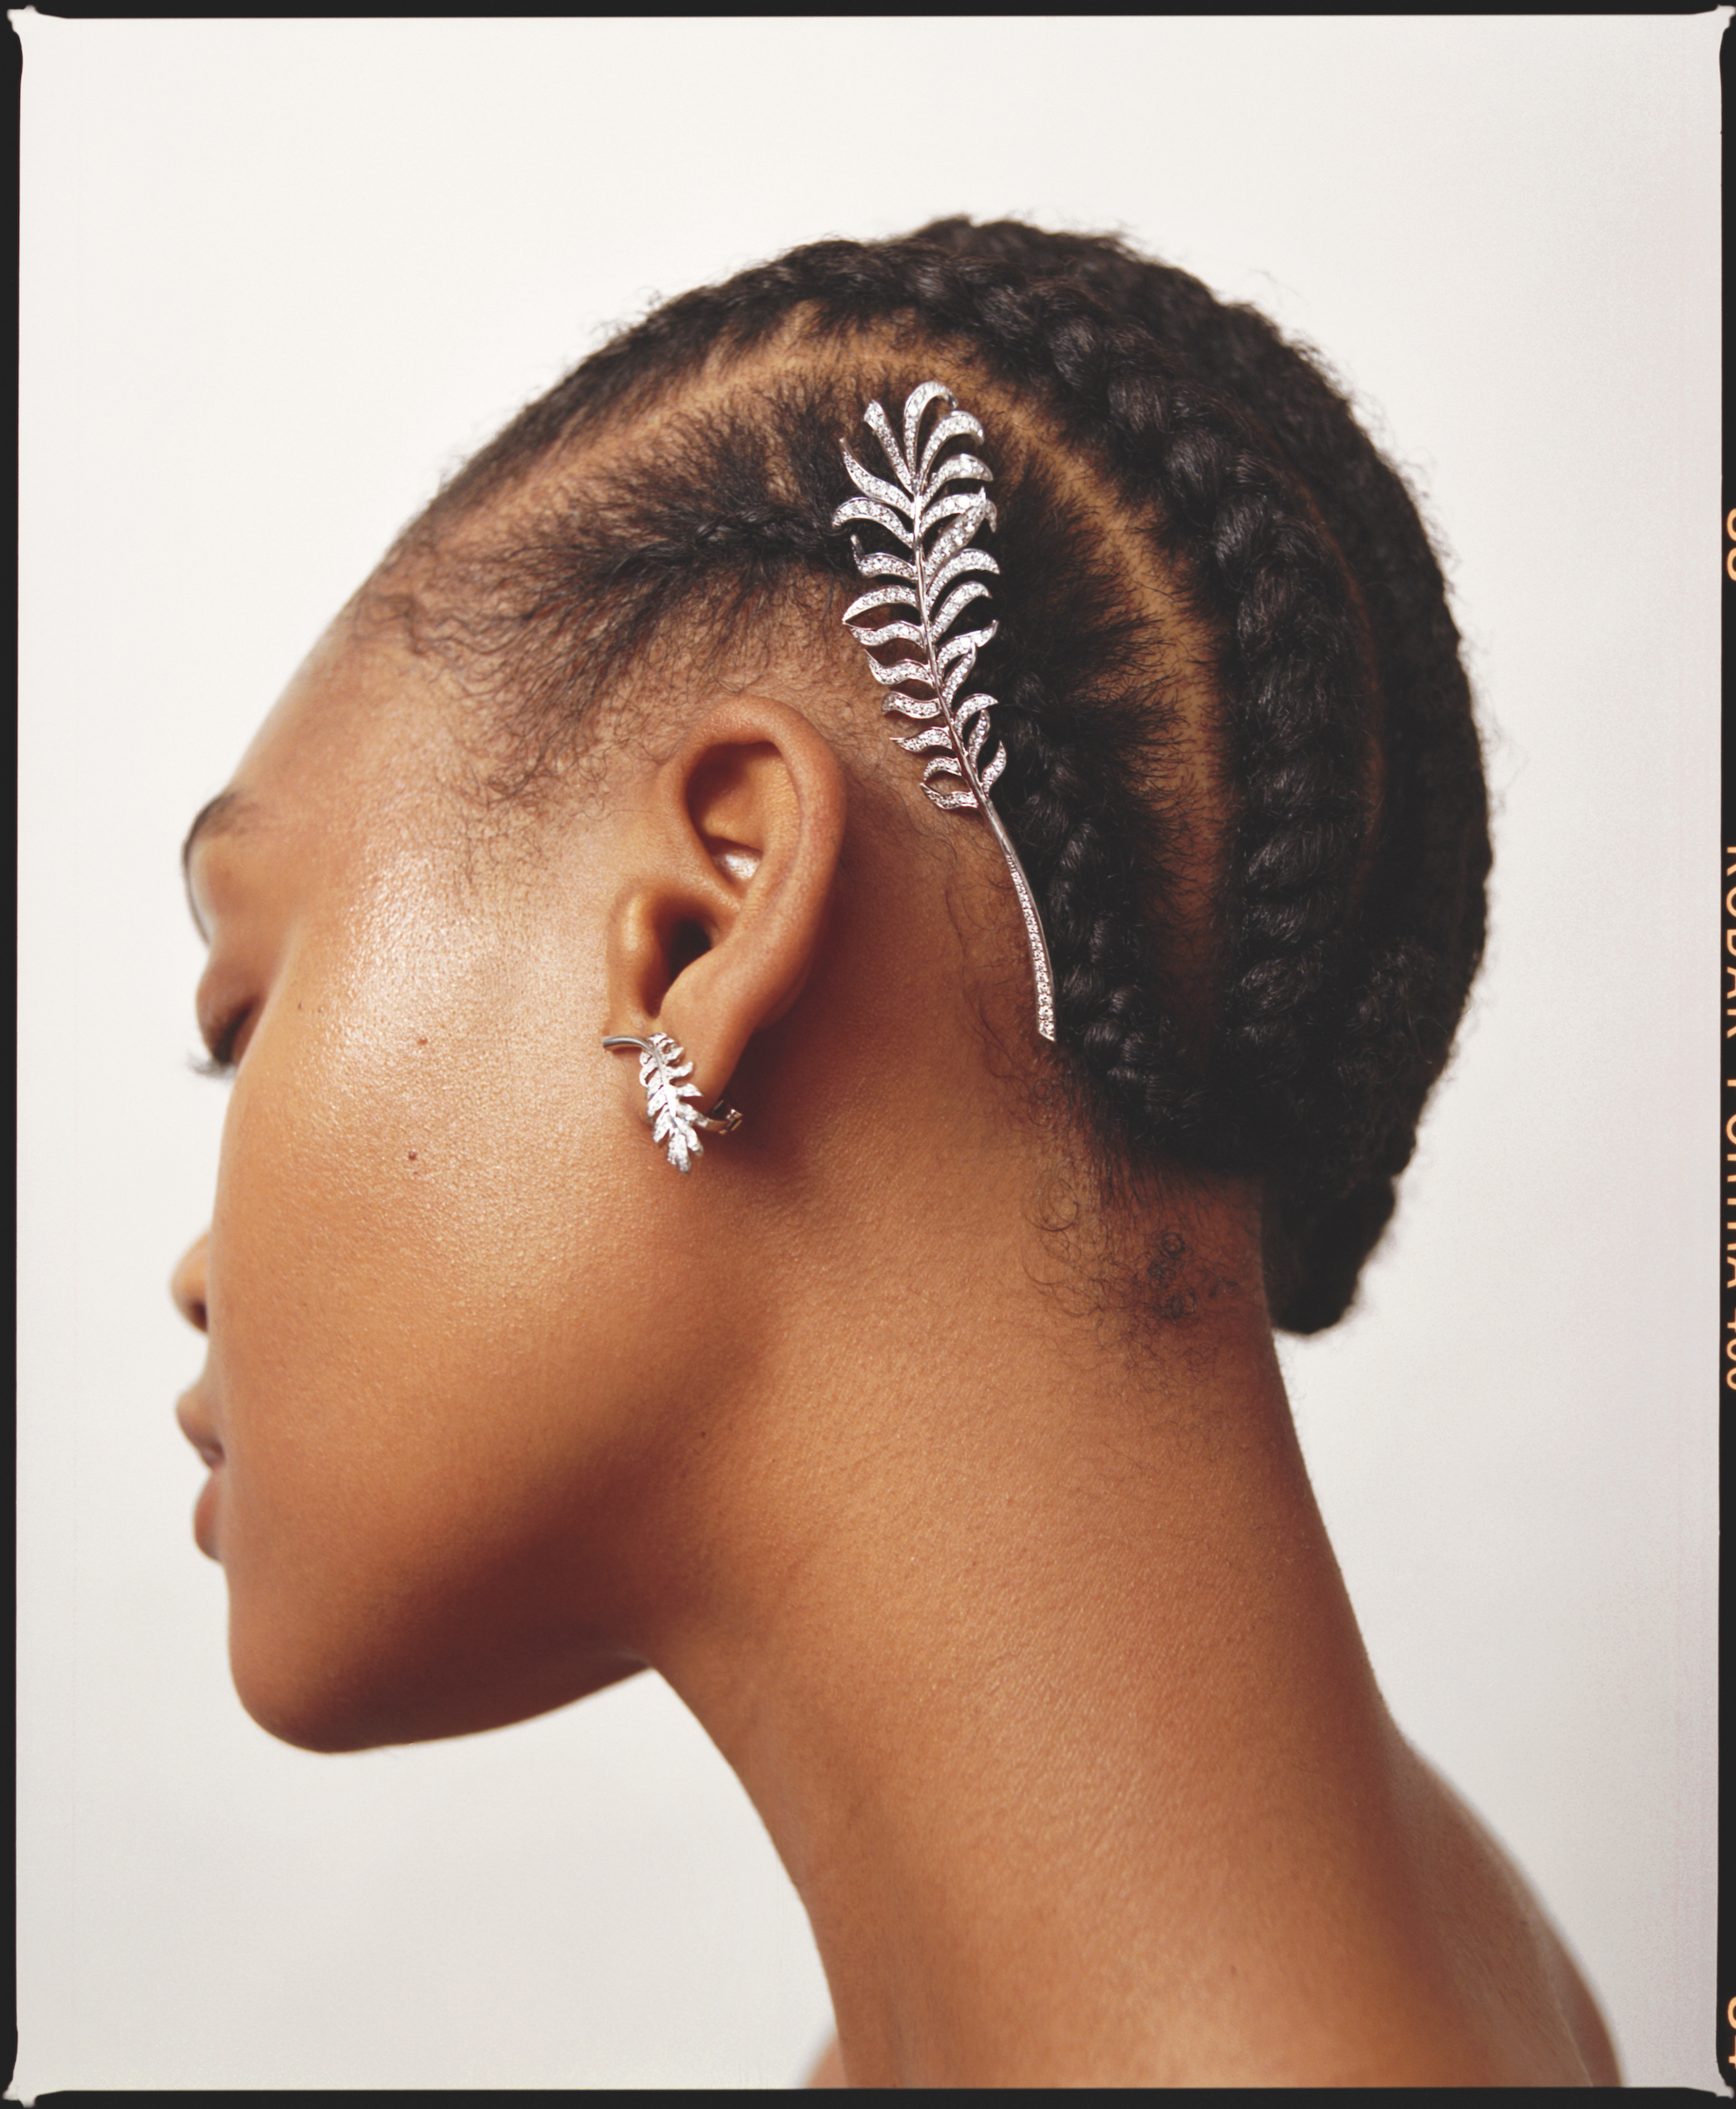 Chanel beauty features in our Spring issue feathers stone hair pin in braided hair